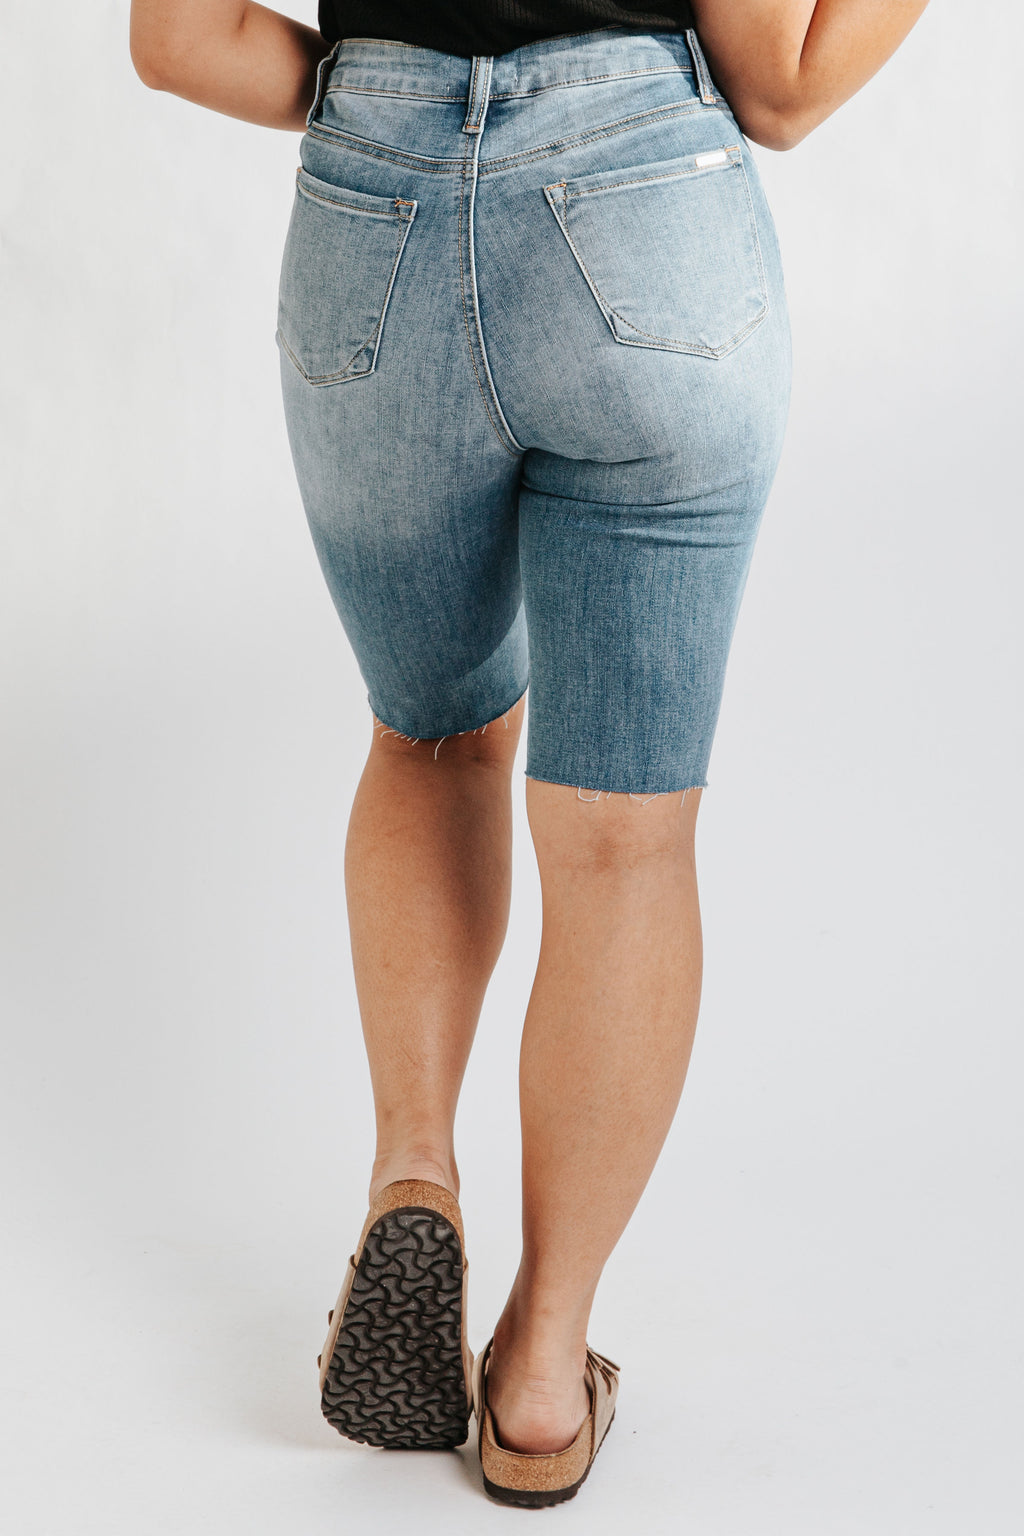 The Ashburn High Rise Denim Biker Short in Dark Wash, studio shoot; back view